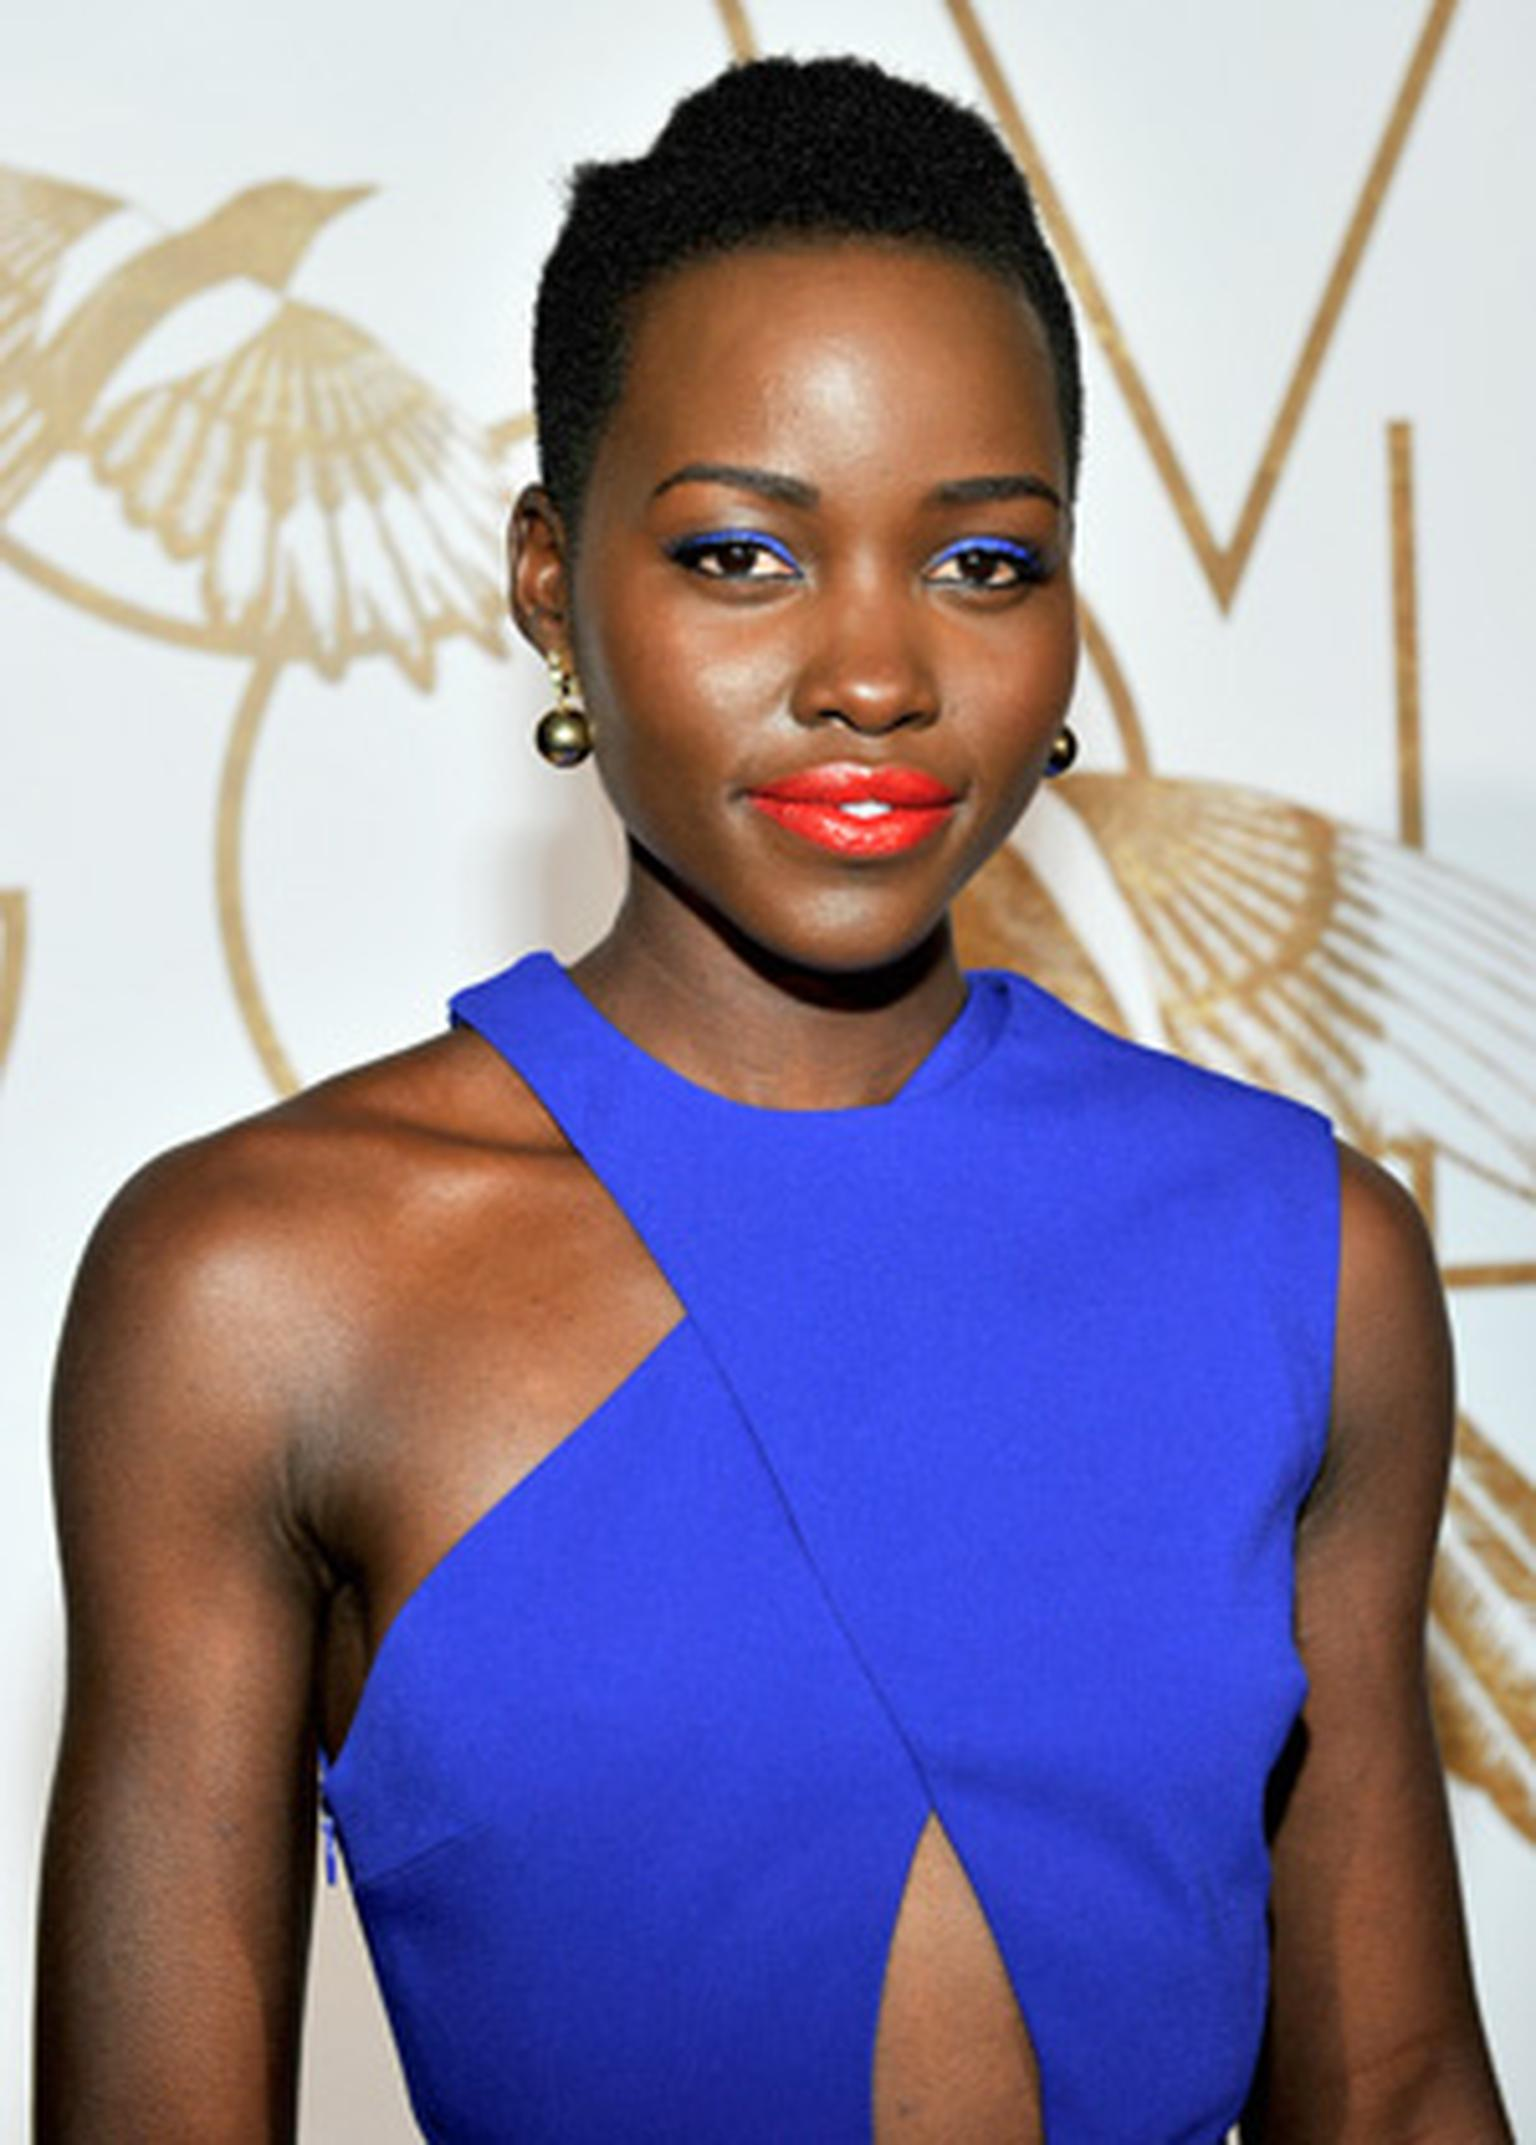 Lupita Nyong'o wore Elena Votsi gold and diamond earrings and a gold ring to a LoveGold event held in LA in her honour on 26 February 2014